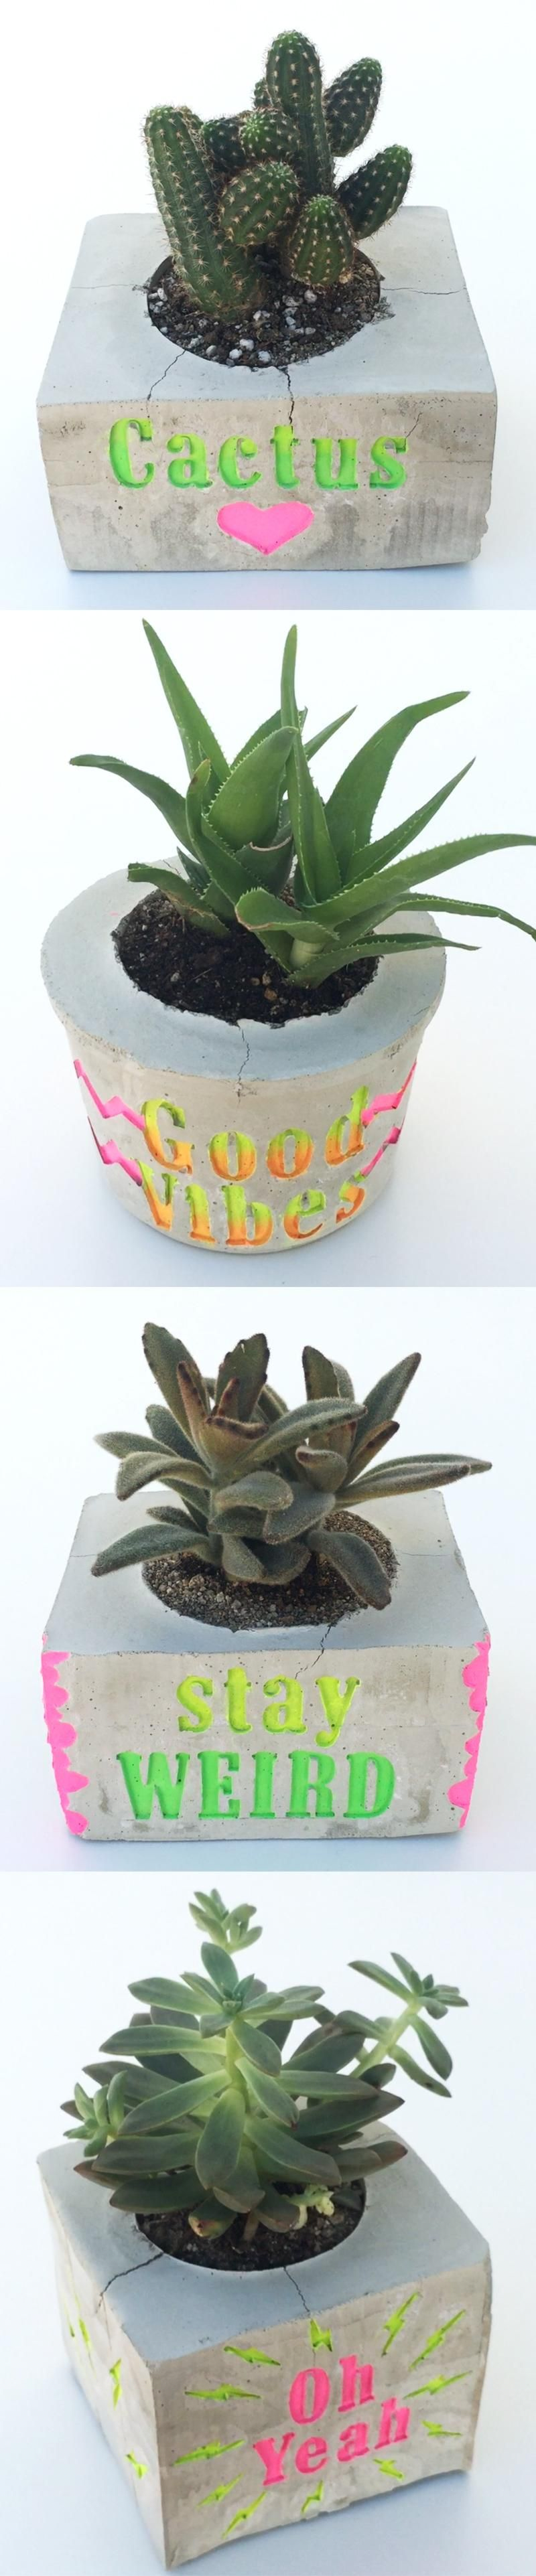 DIY: Make a Cement Planter & Engrave a Personalized Message (SAMPLE PROJECT) - image 7 - student project